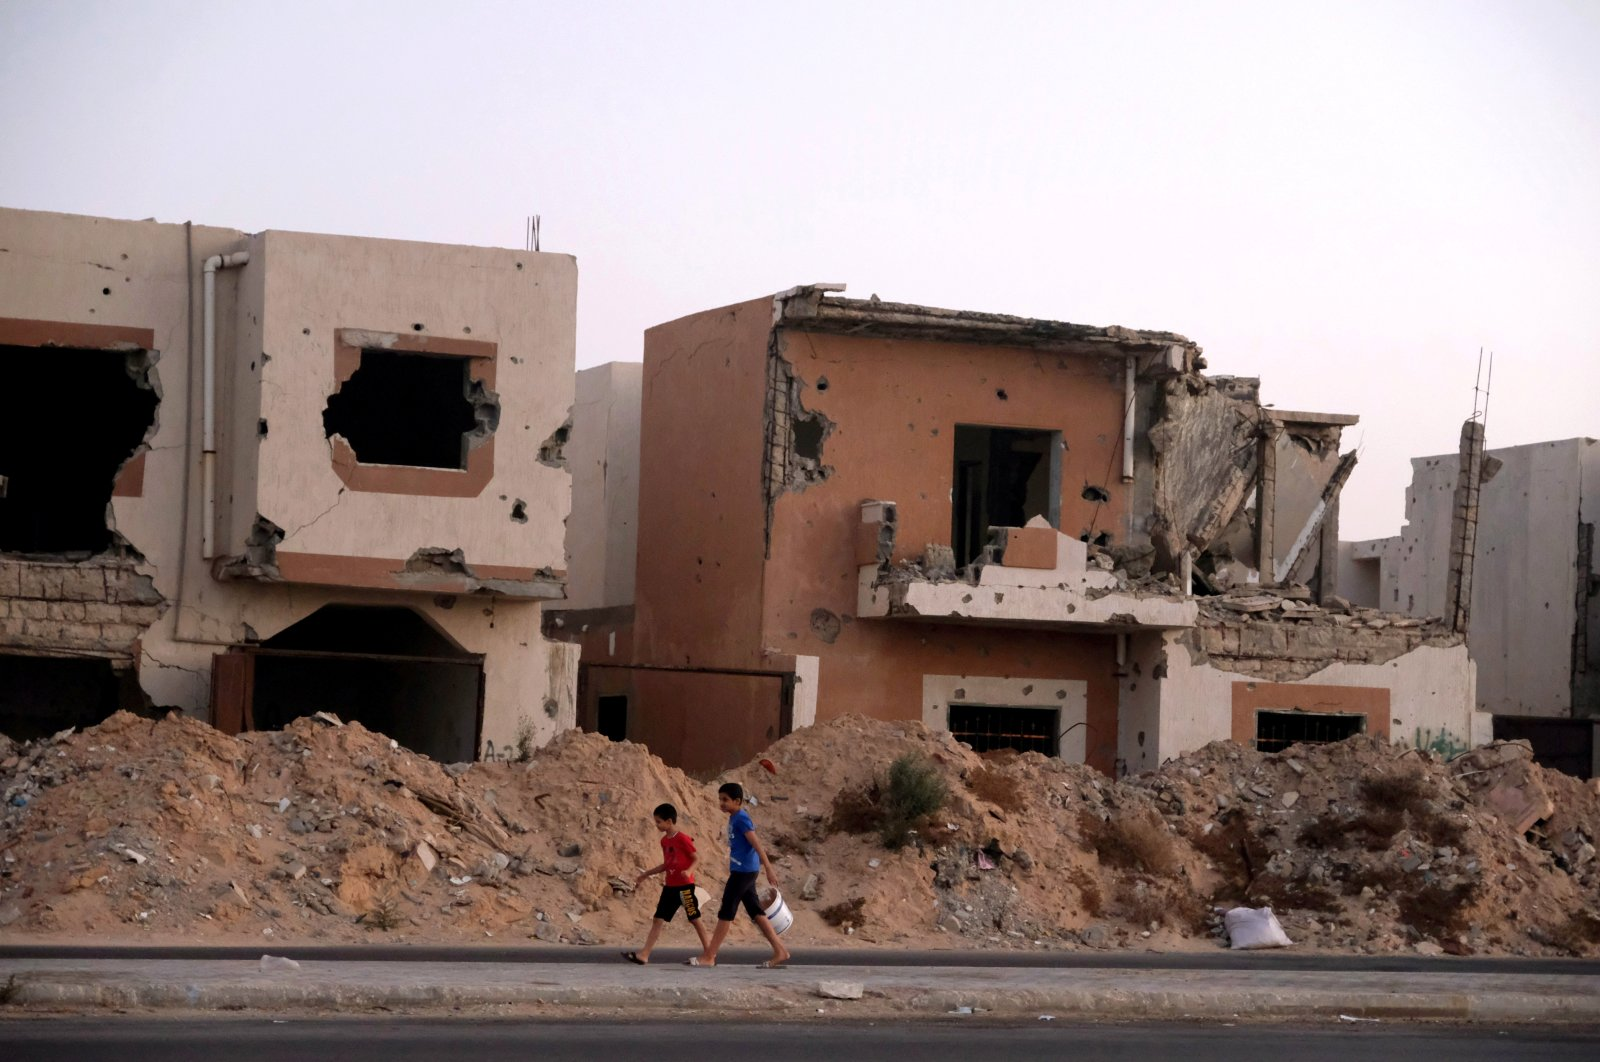 Boys walk past houses that were destroyed in past fighting with Daesh militants in Sirte, Libya, Aug. 17, 2020. (REUTERS Photo)